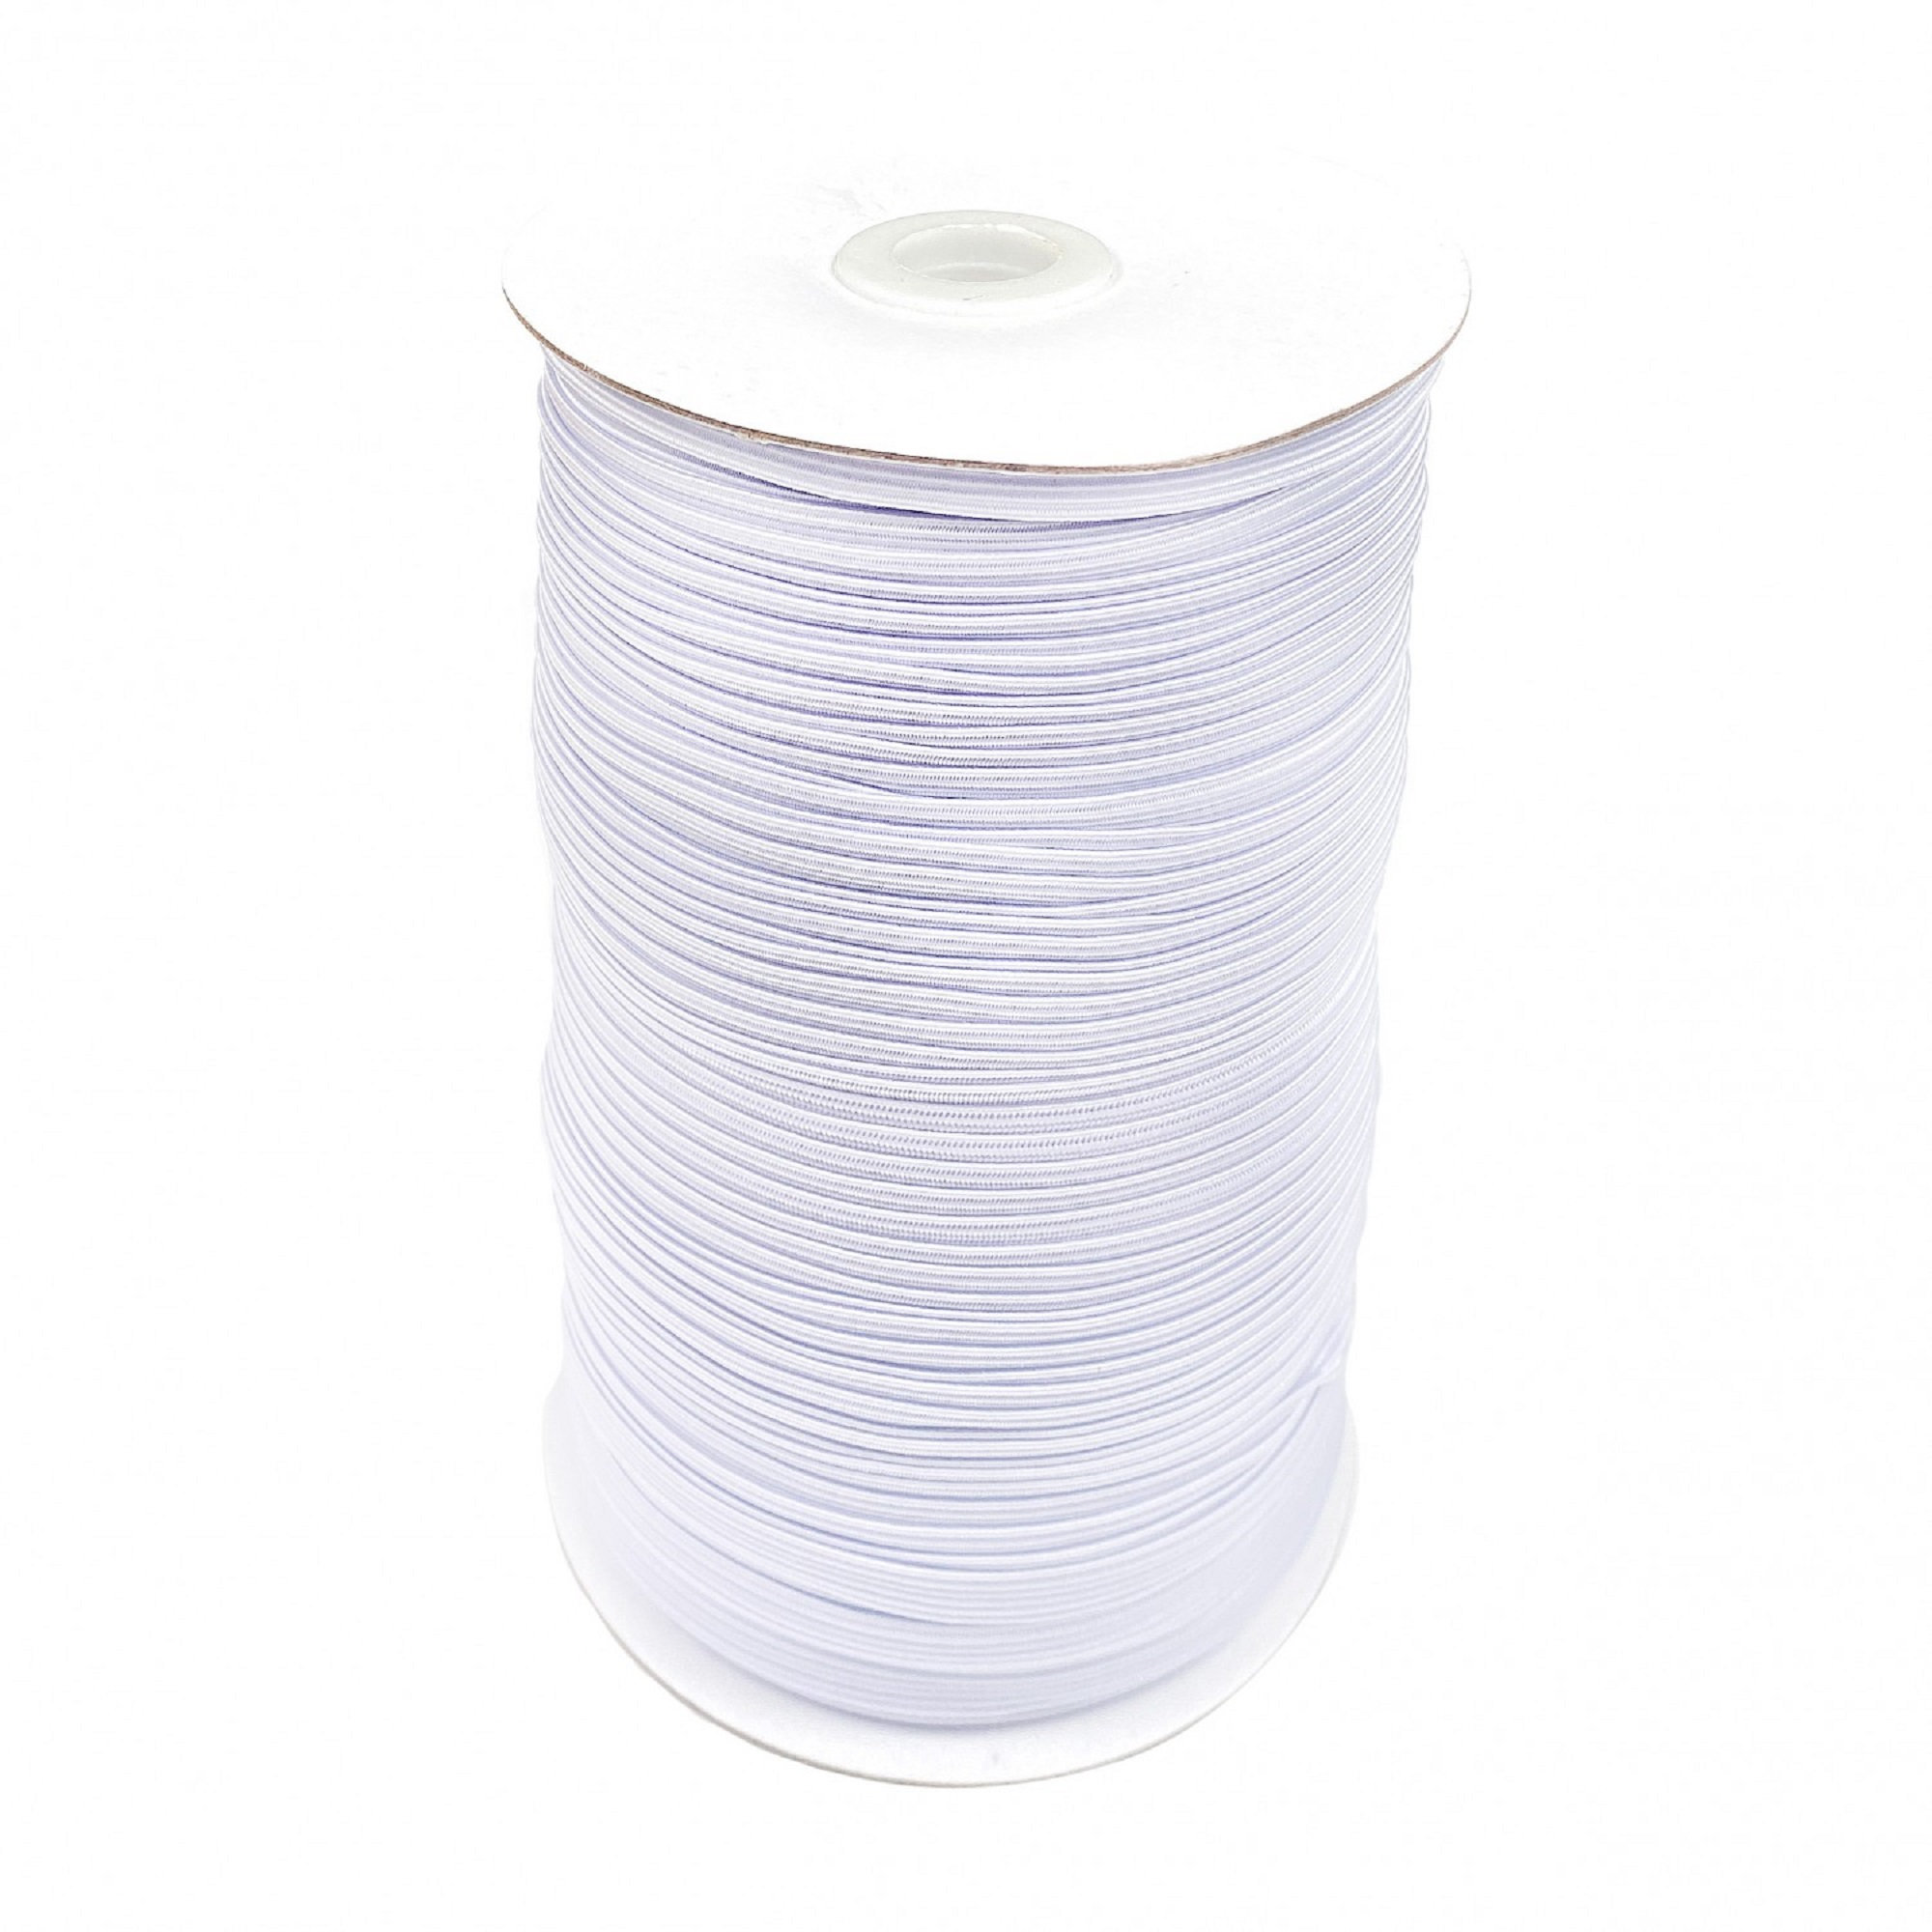 1/4 Flat White Elastic Latex Free - 5 yards